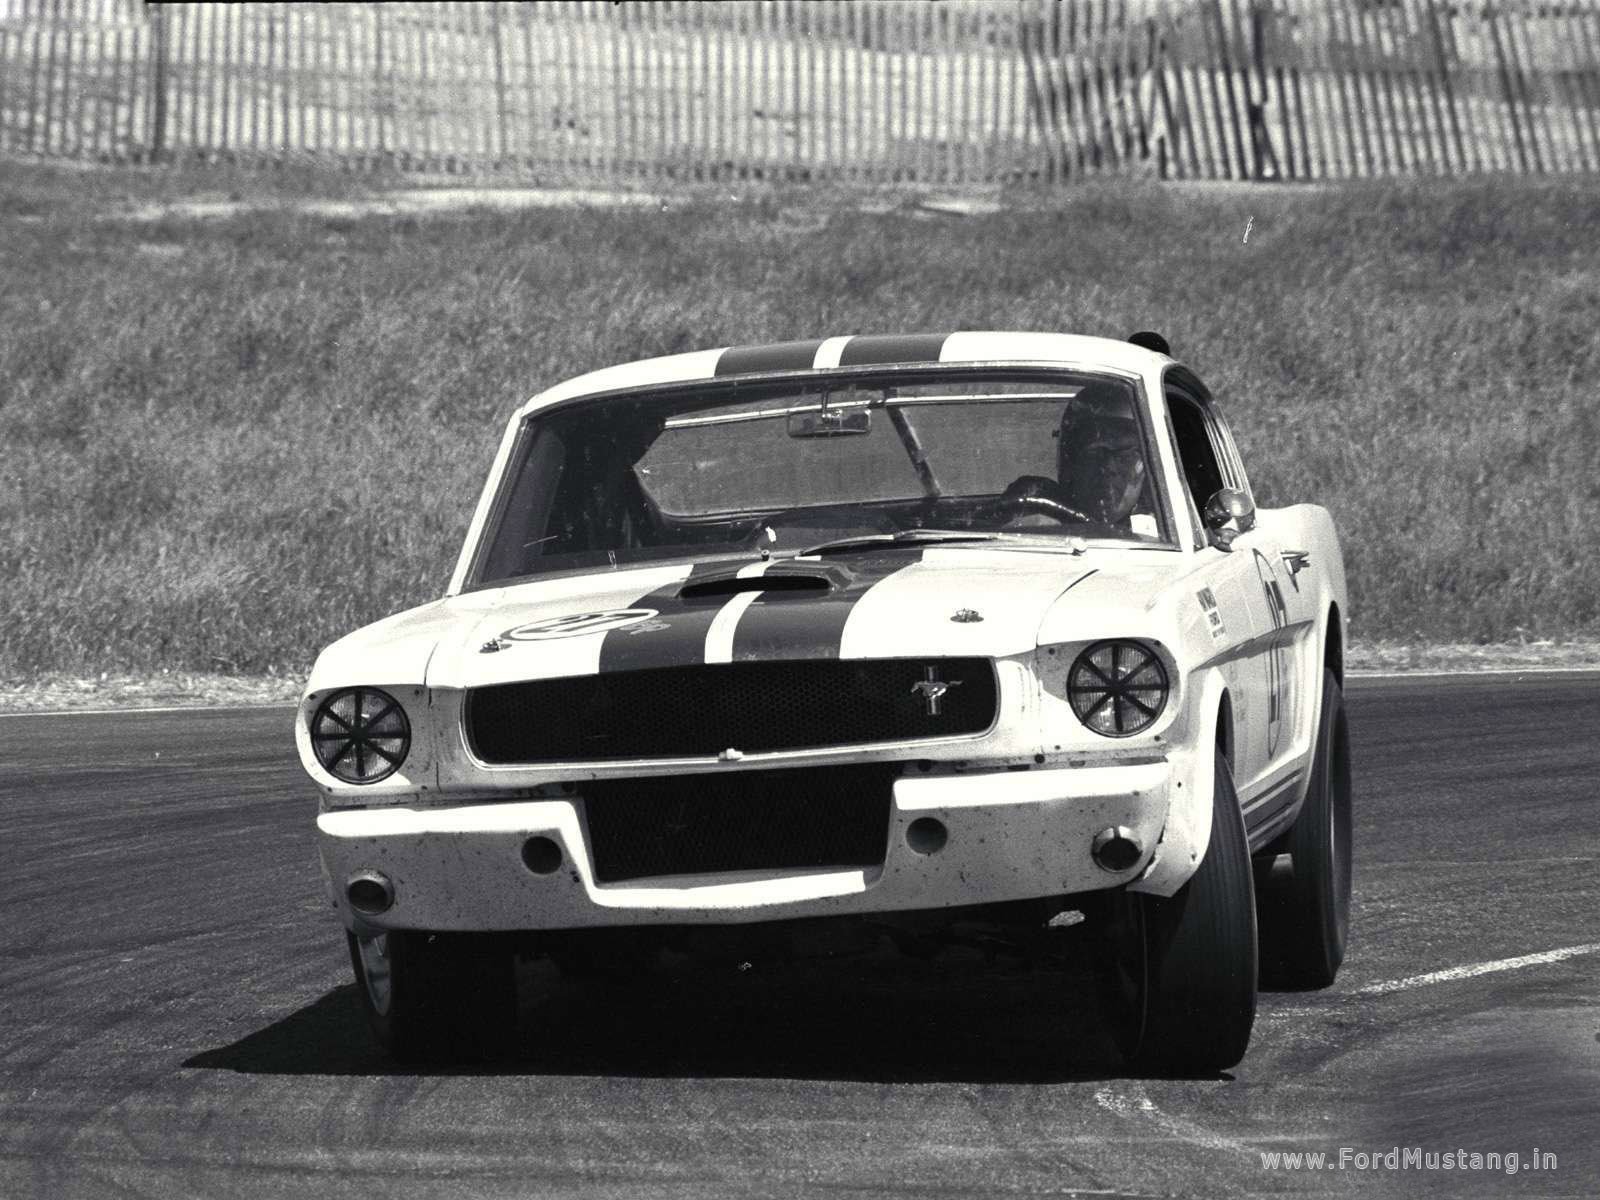 Ford Mustang 1965 foto - 3